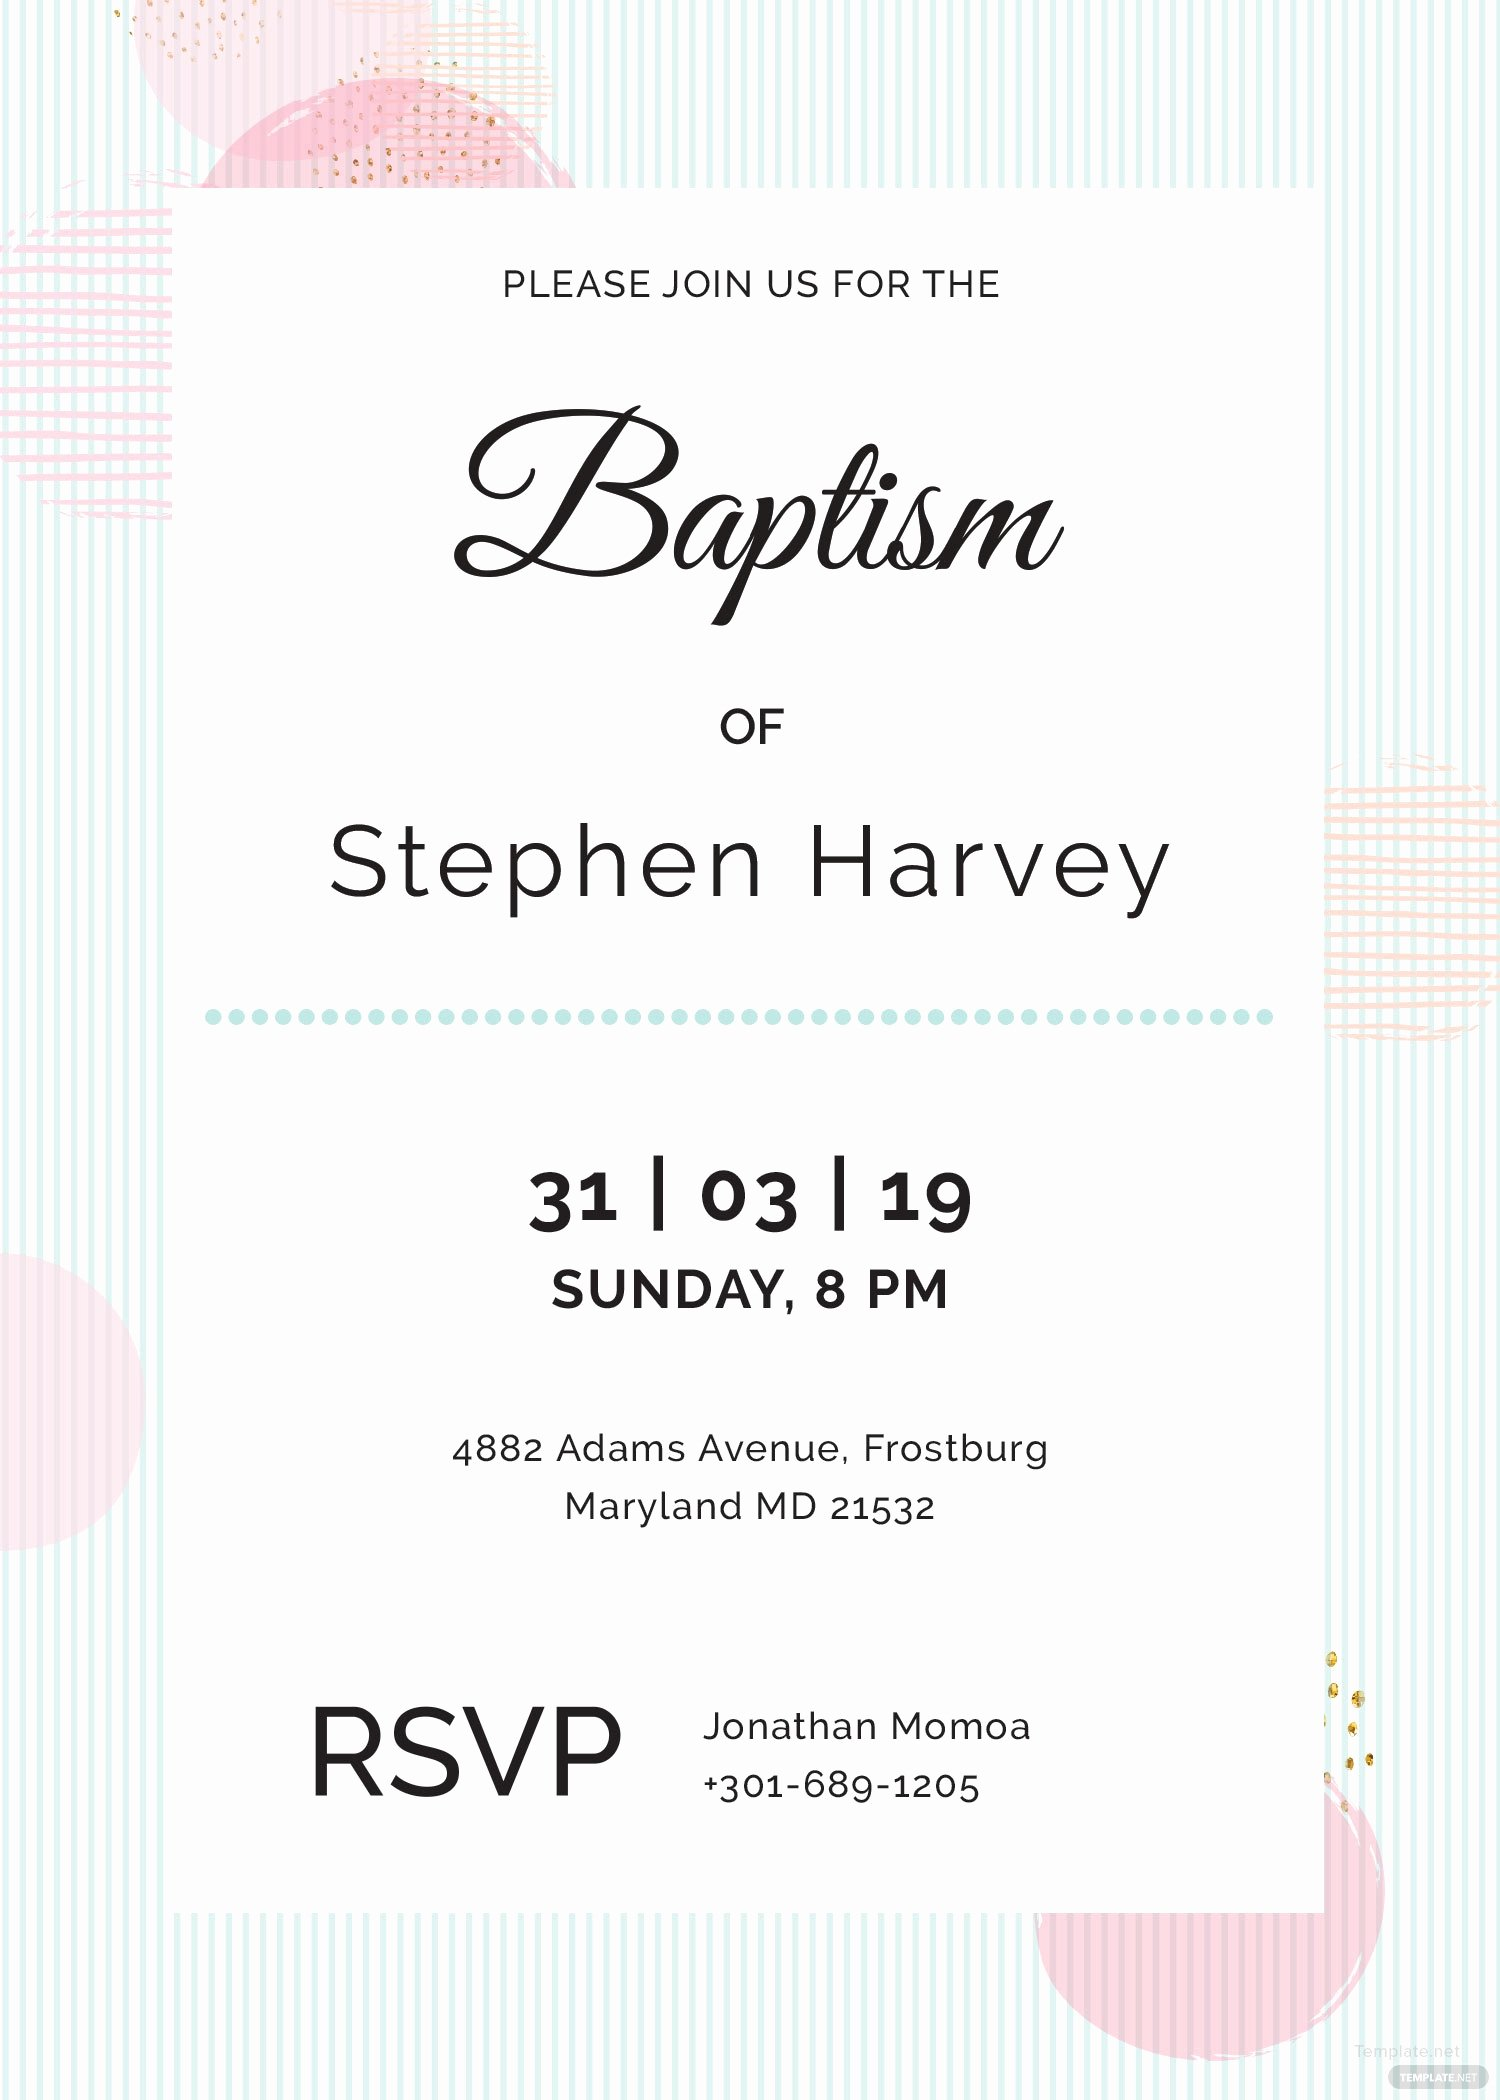 Baptism Invitation Template Microsoft Word Unique Sample Baptism Invitation Template In Adobe Shop Illustrator Microsoft Word Publisher